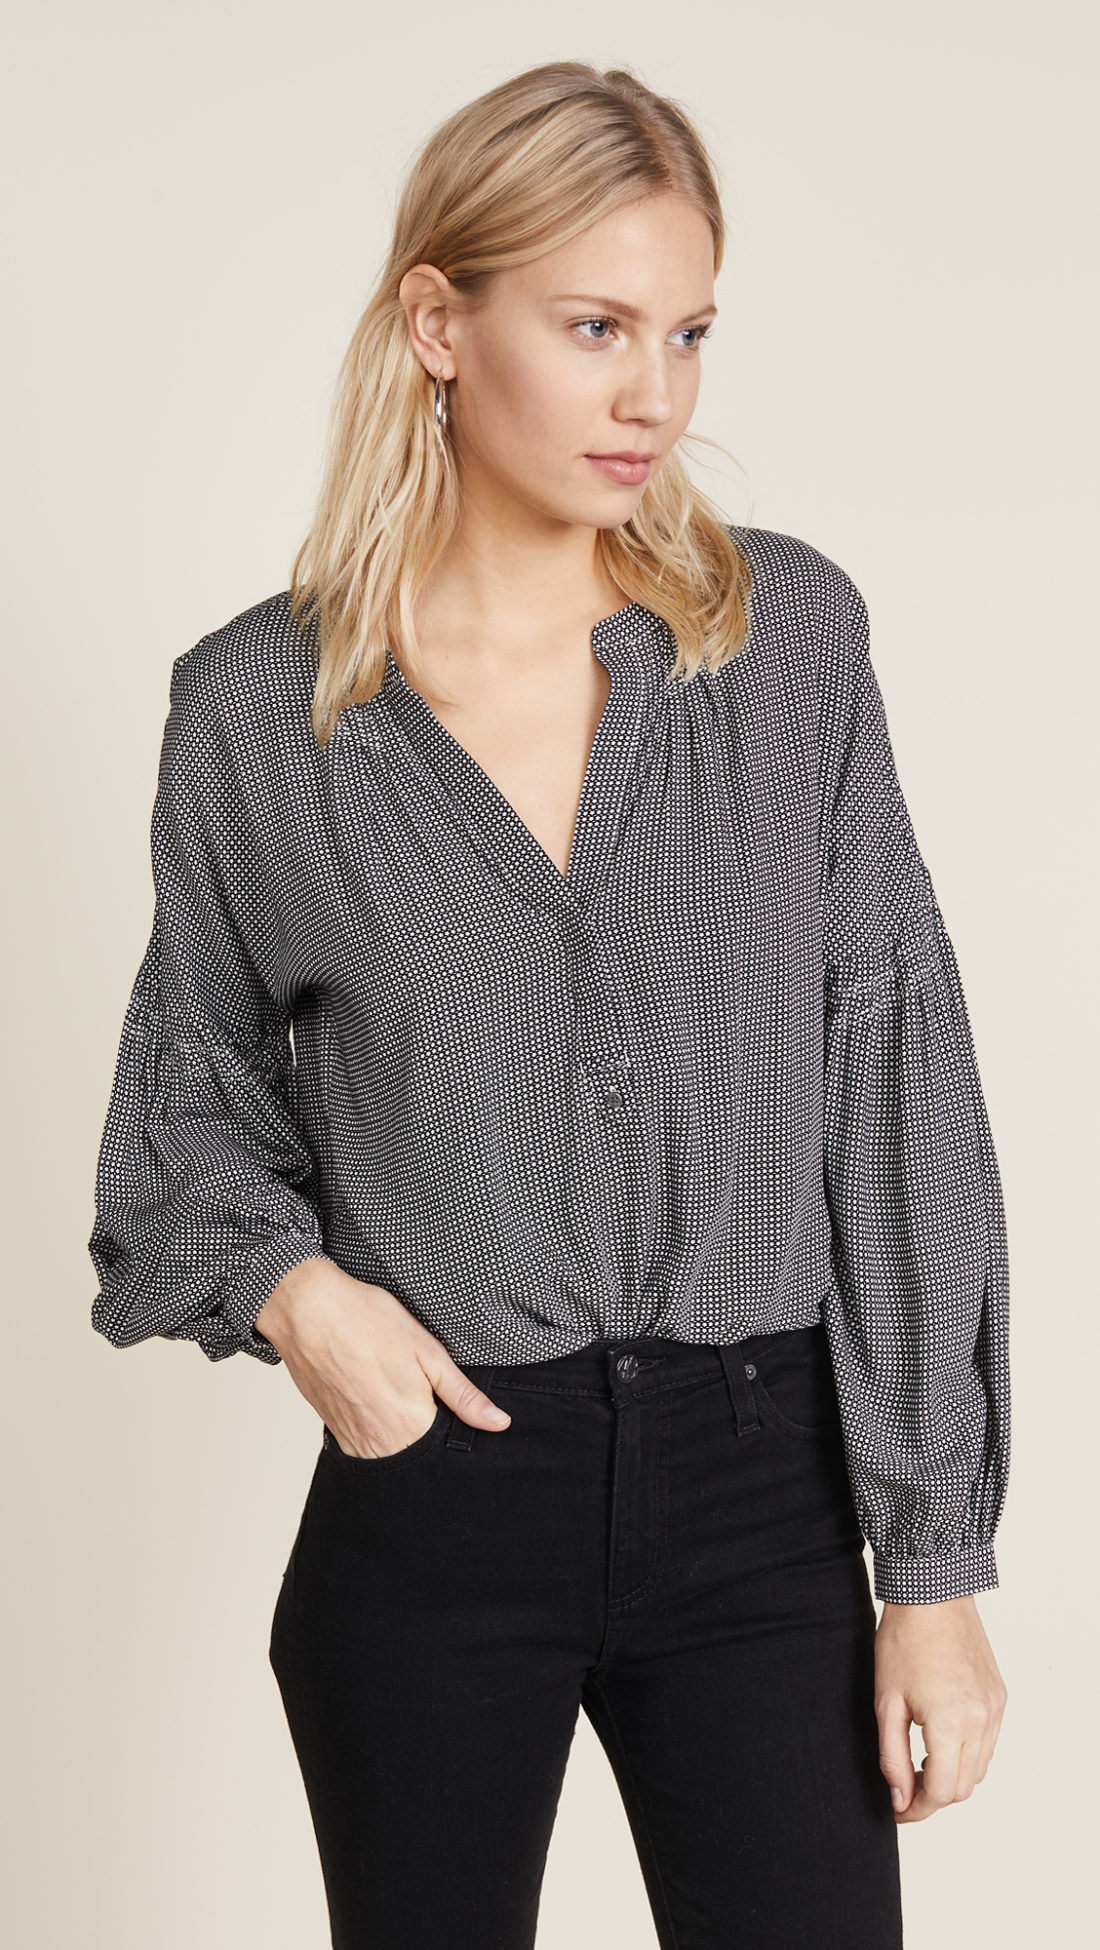 Joie Azabeth C Blouse  - Shopbop sale recommendations by popular North Carolina fashion blogger Glitter, Inc.